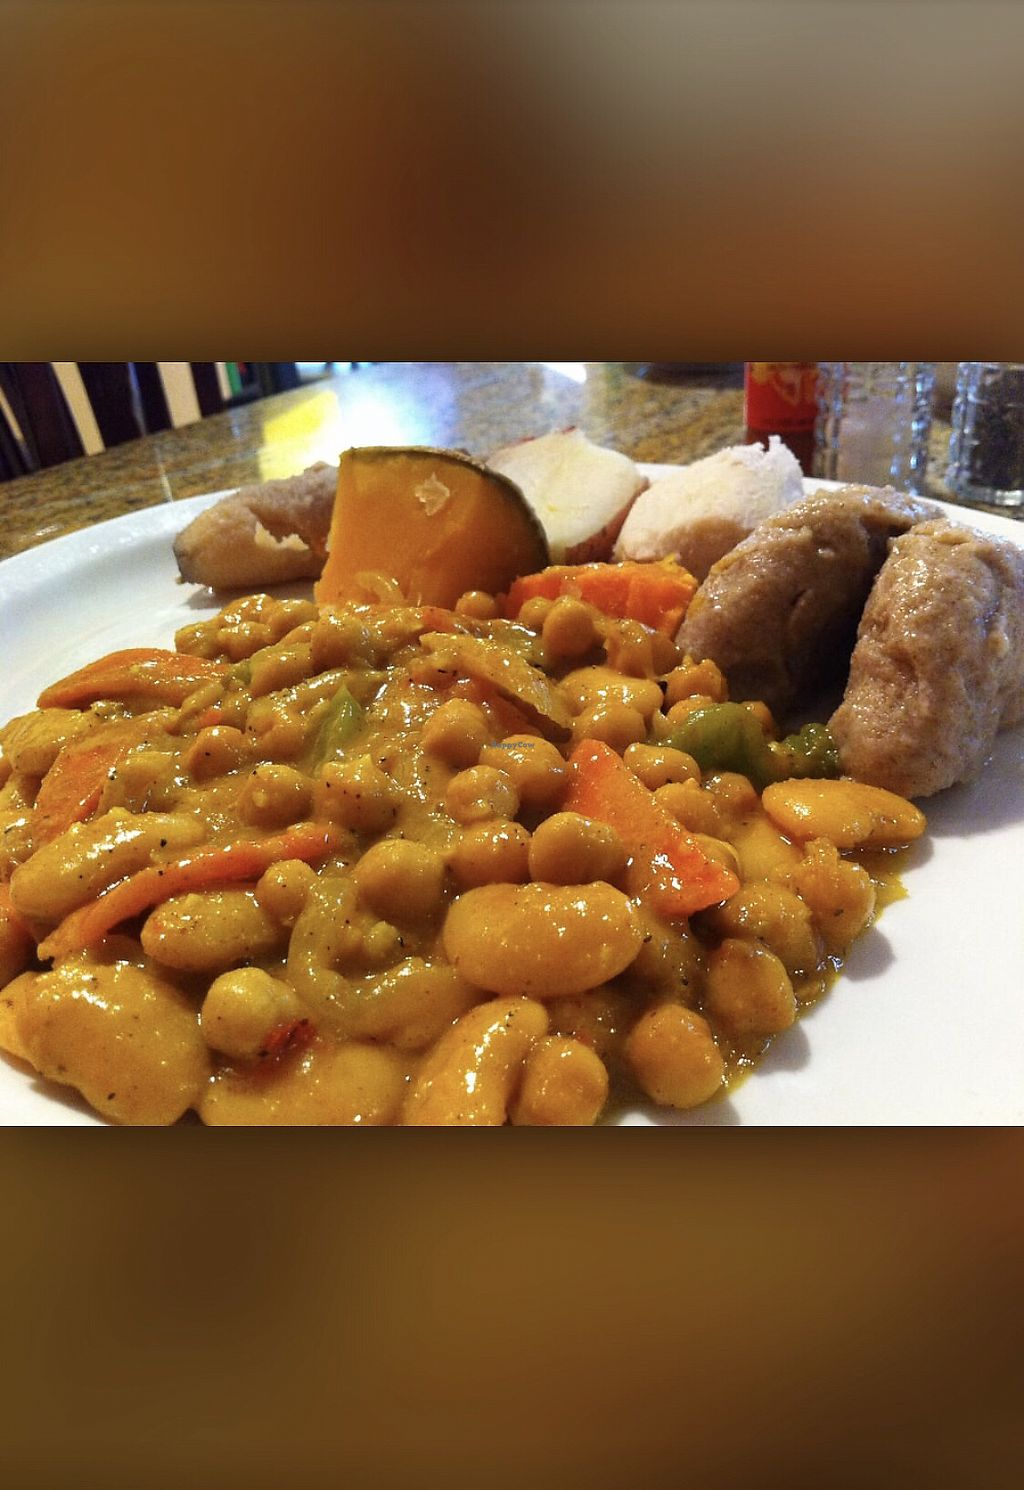 "Photo of Coconutz Fusion Cafe  by <a href=""/members/profile/AlexGibson"">AlexGibson</a> <br/>Chickpeas & Butter beans in coconut curry sauce  <br/> January 29, 2018  - <a href='/contact/abuse/image/109874/352432'>Report</a>"